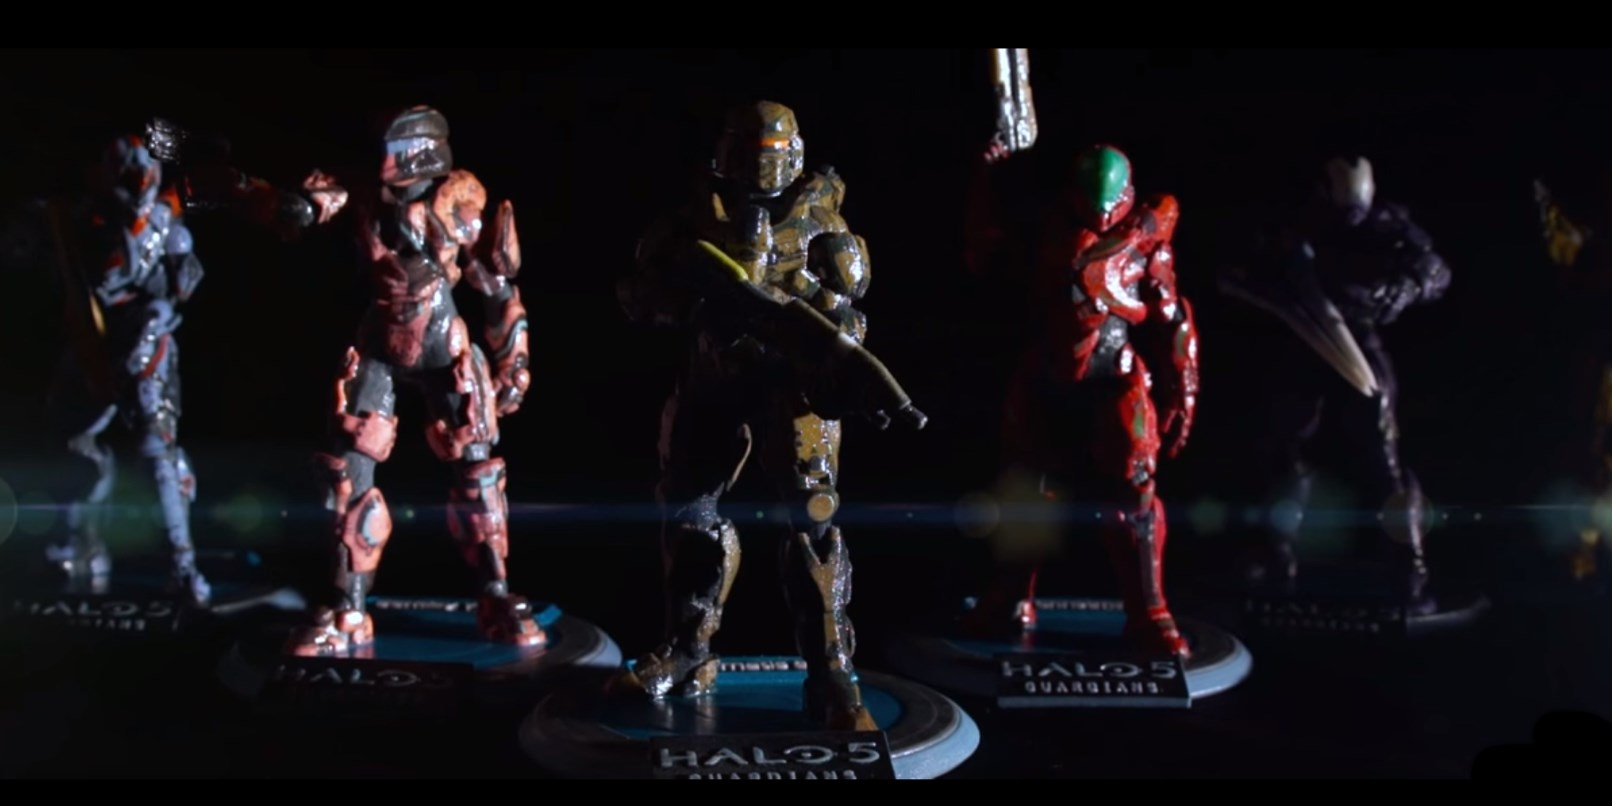 You Can Order A 3d Printed Figure Of Your Own Halo 5 Spartan